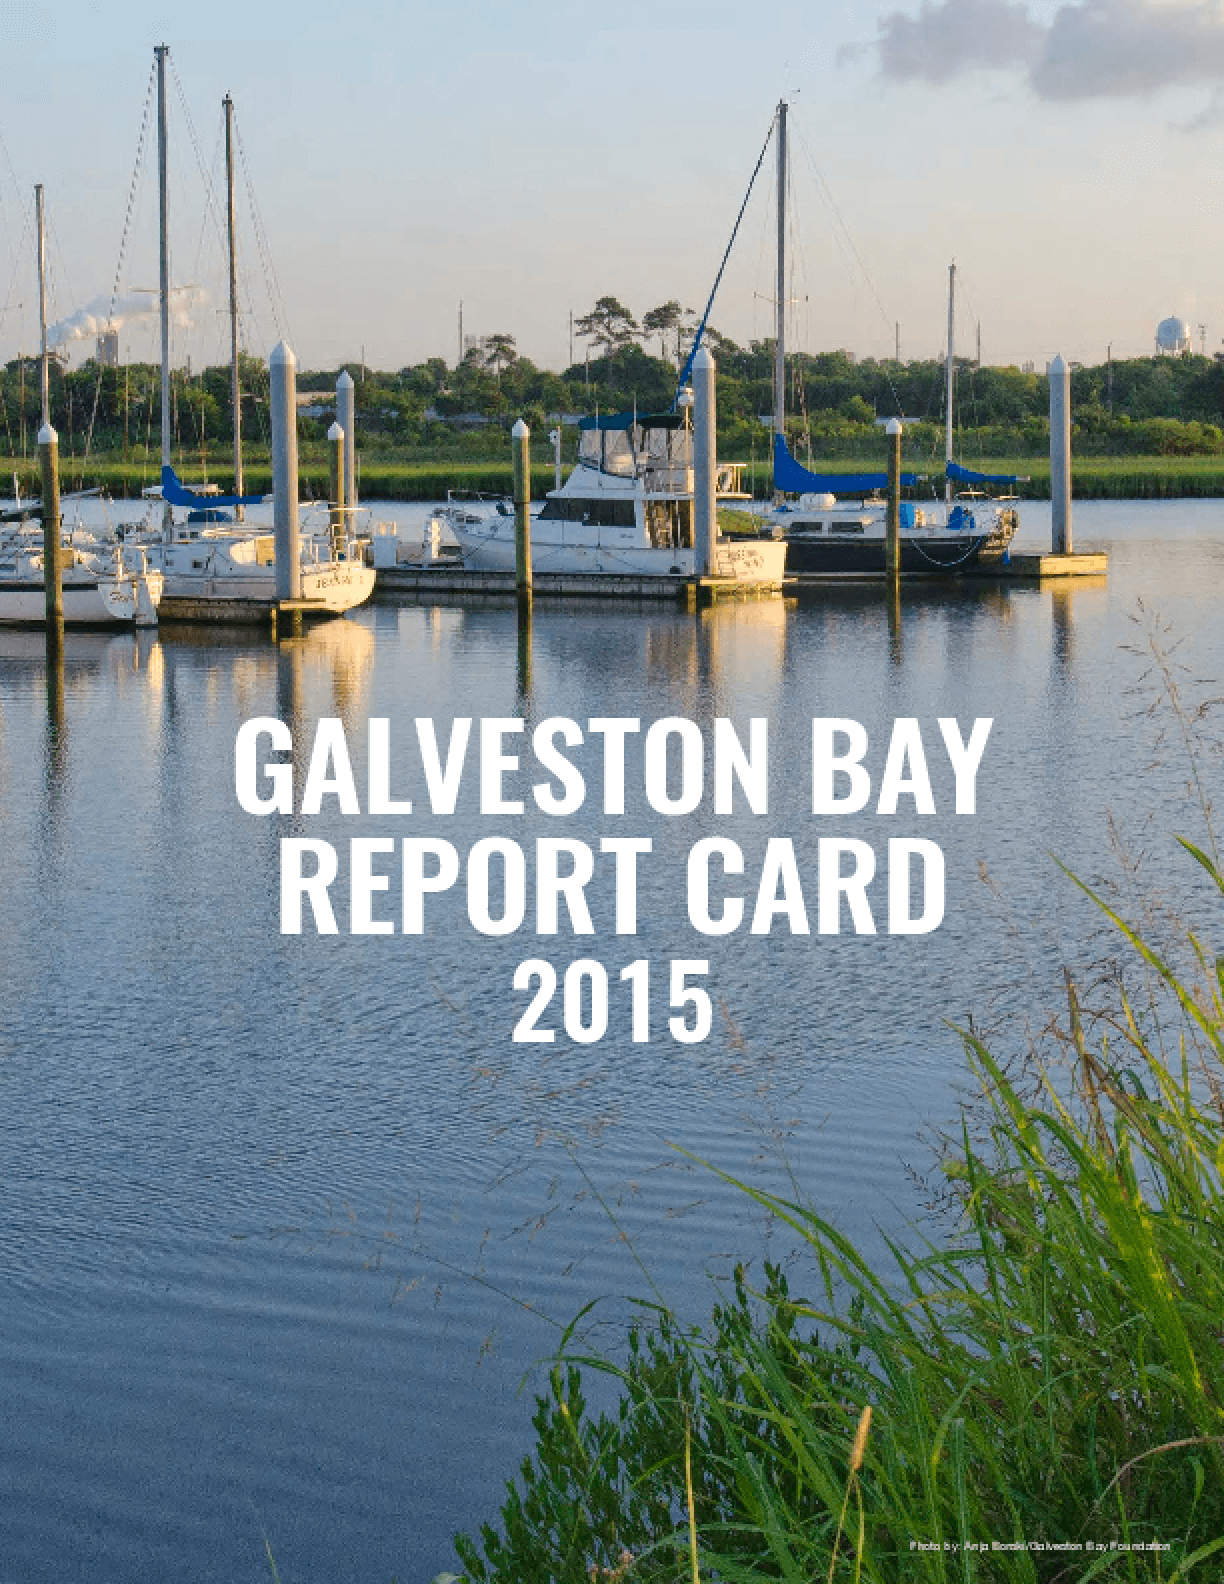 Galveston Bay Report Card 2015